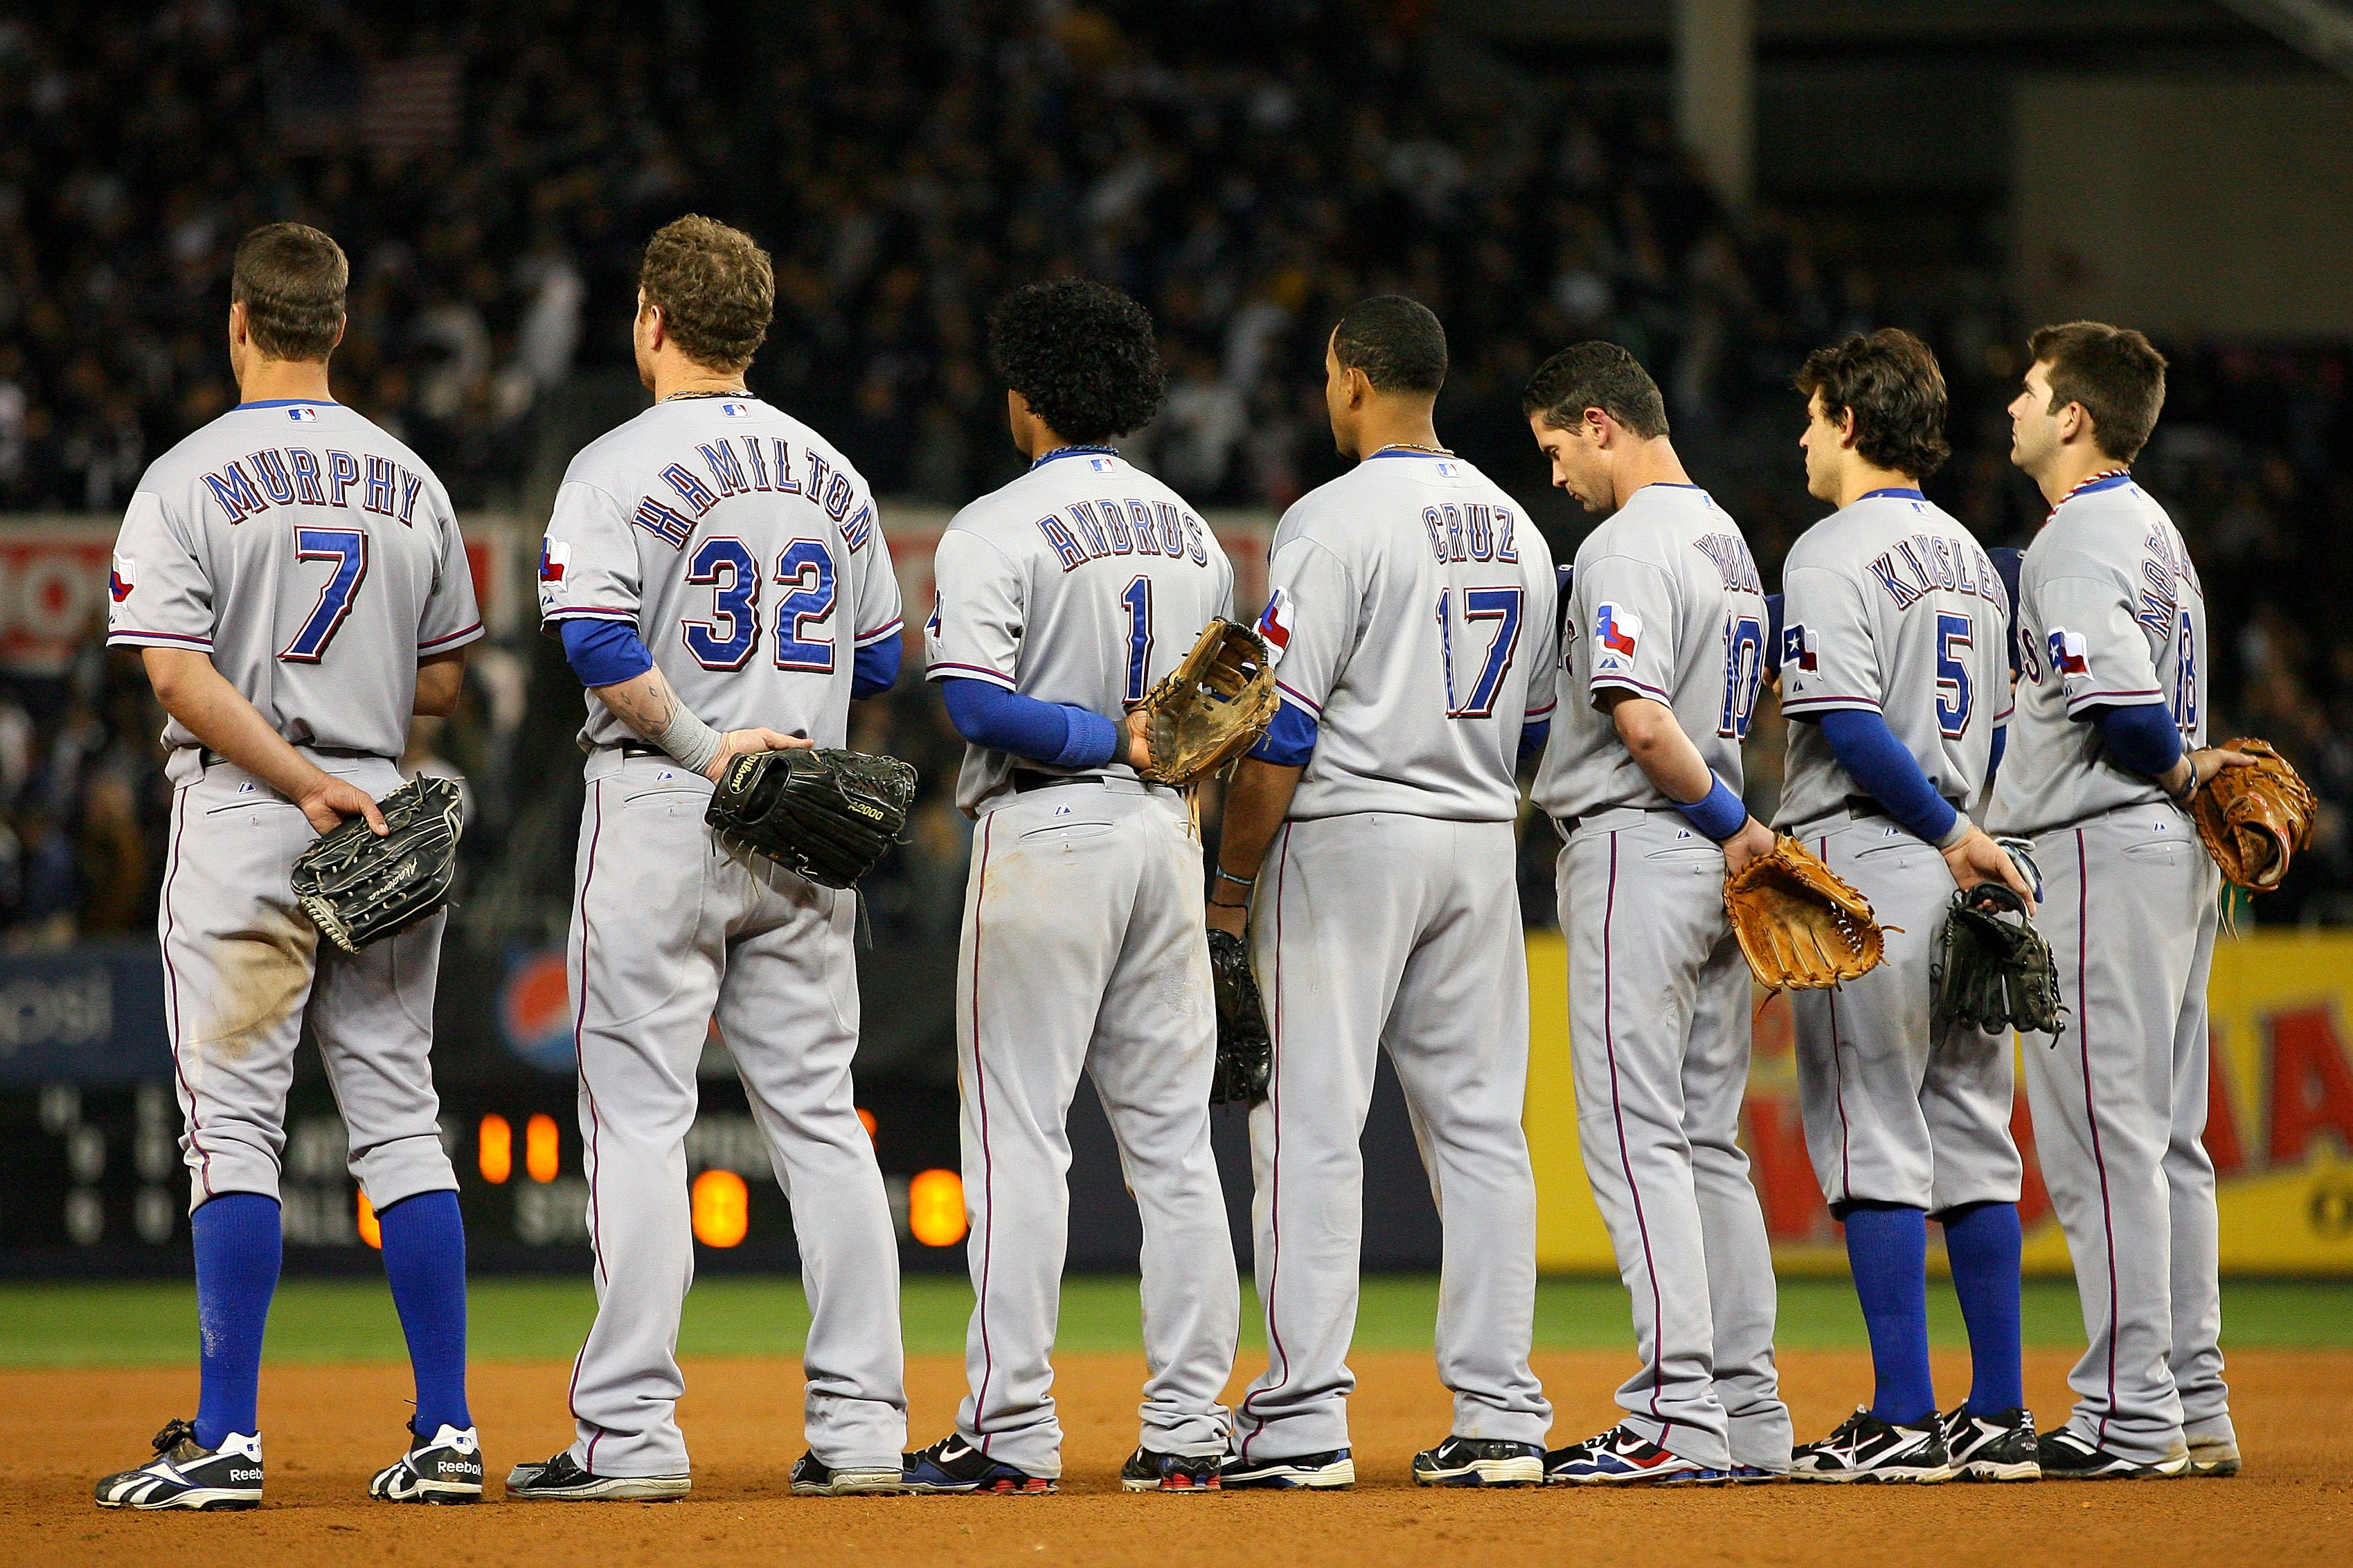 NEW YORK - OCTOBER 19:  (L-R) David Murphy #7, Josh Hamilton #32, Elvis Andrus #1, Nelson Cruz #17, Michael Young #10, Ian Kinsler #5 and Mitch Moreland #18 of the Texas Rangers stand for the performance of 'God Bless America' during the seventh inning ag